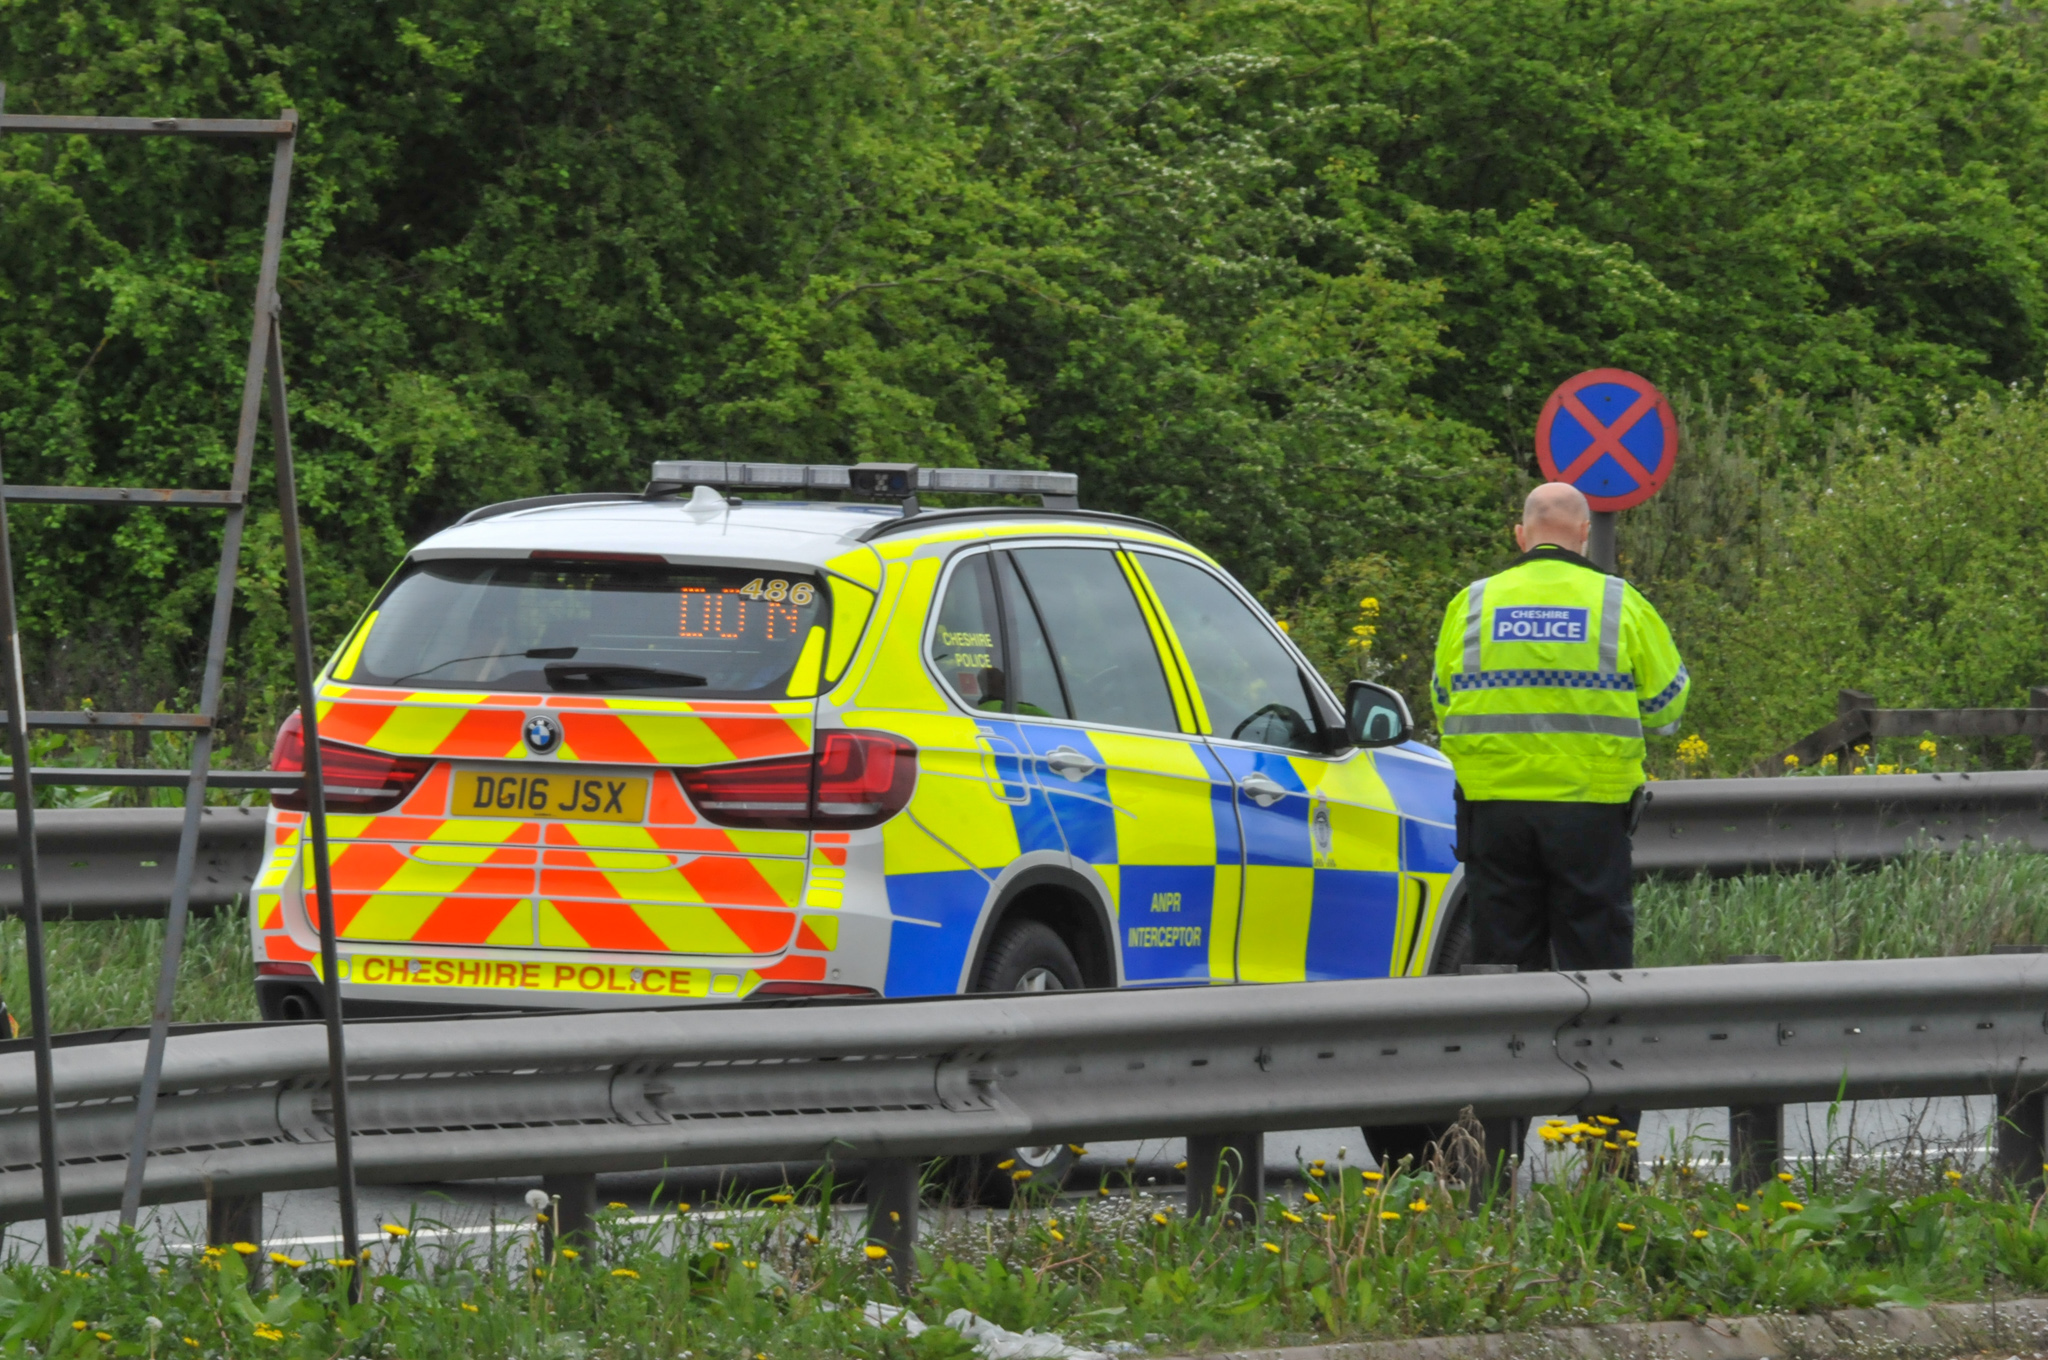 Police at the scene of last Friday's collision on the A483 near the Posthouse roundabout